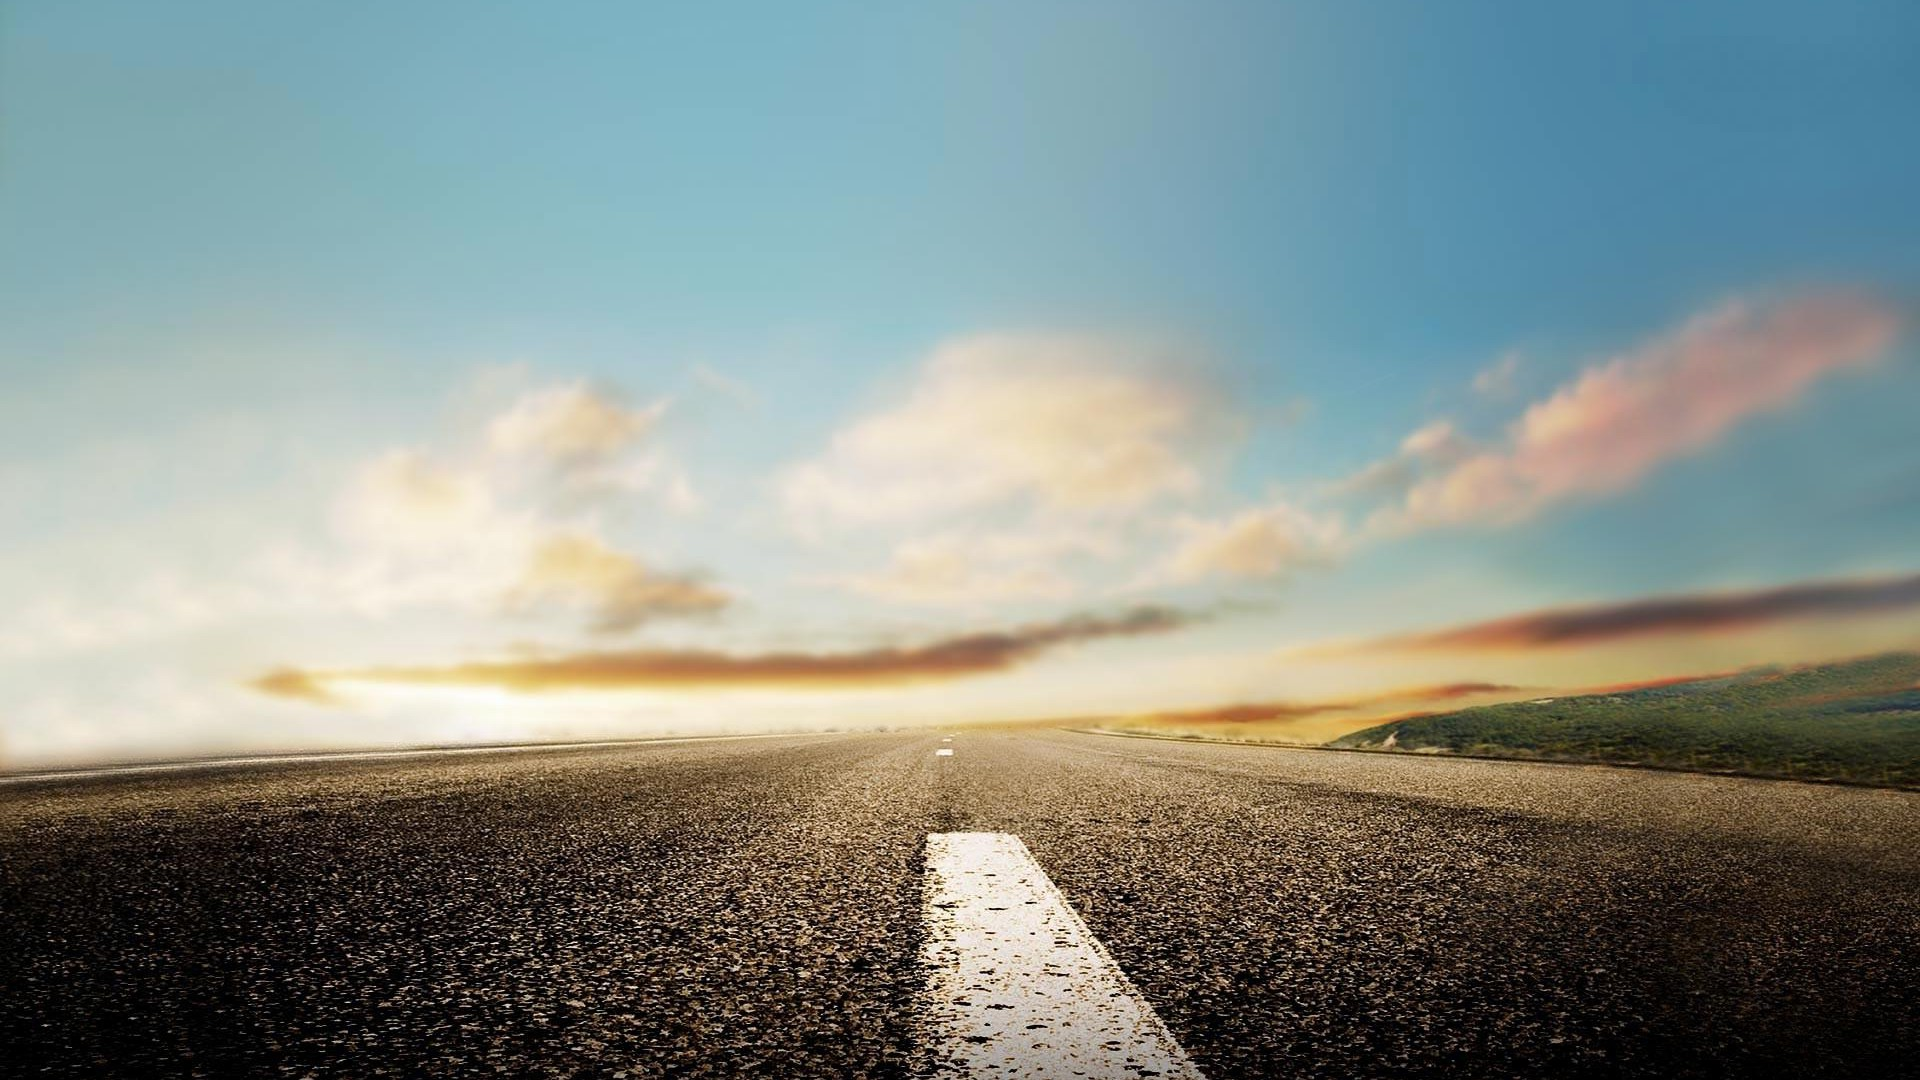 miscellaneous-road-empty-road-wallpaper